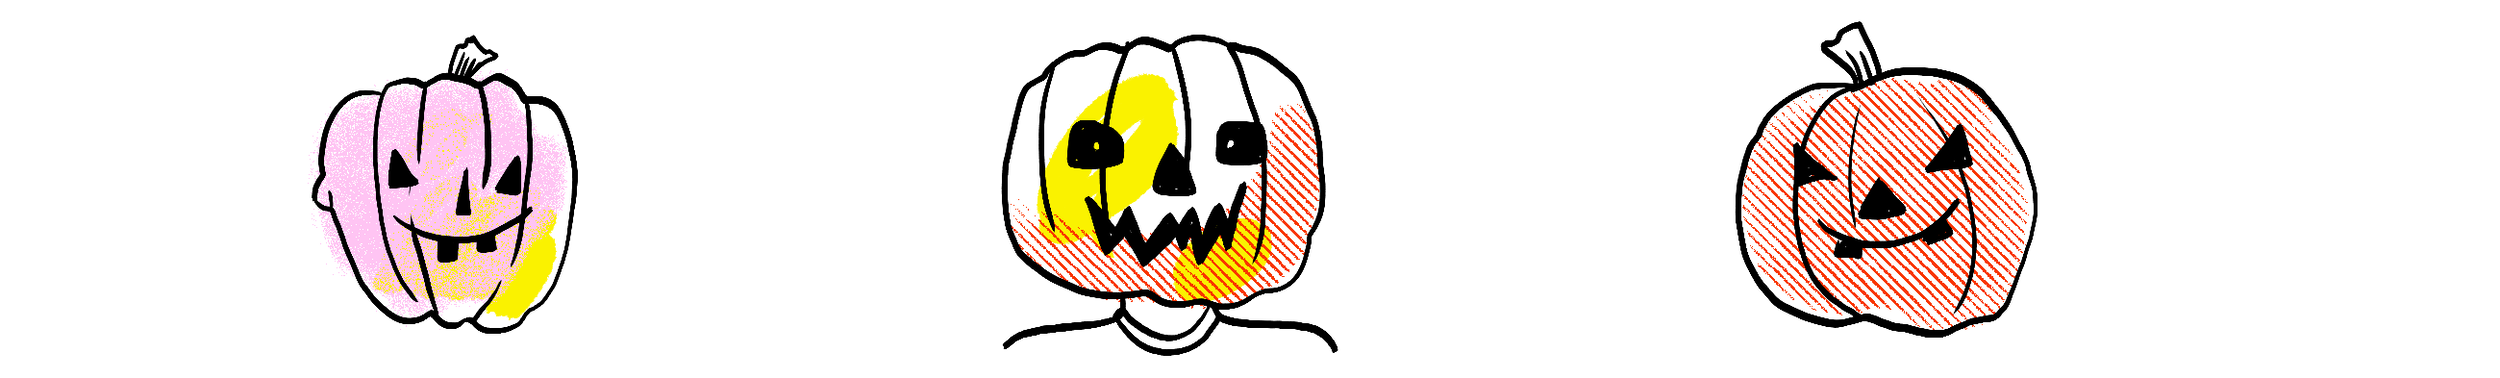 annie-halloween-ruygt-illustration-pumpkins